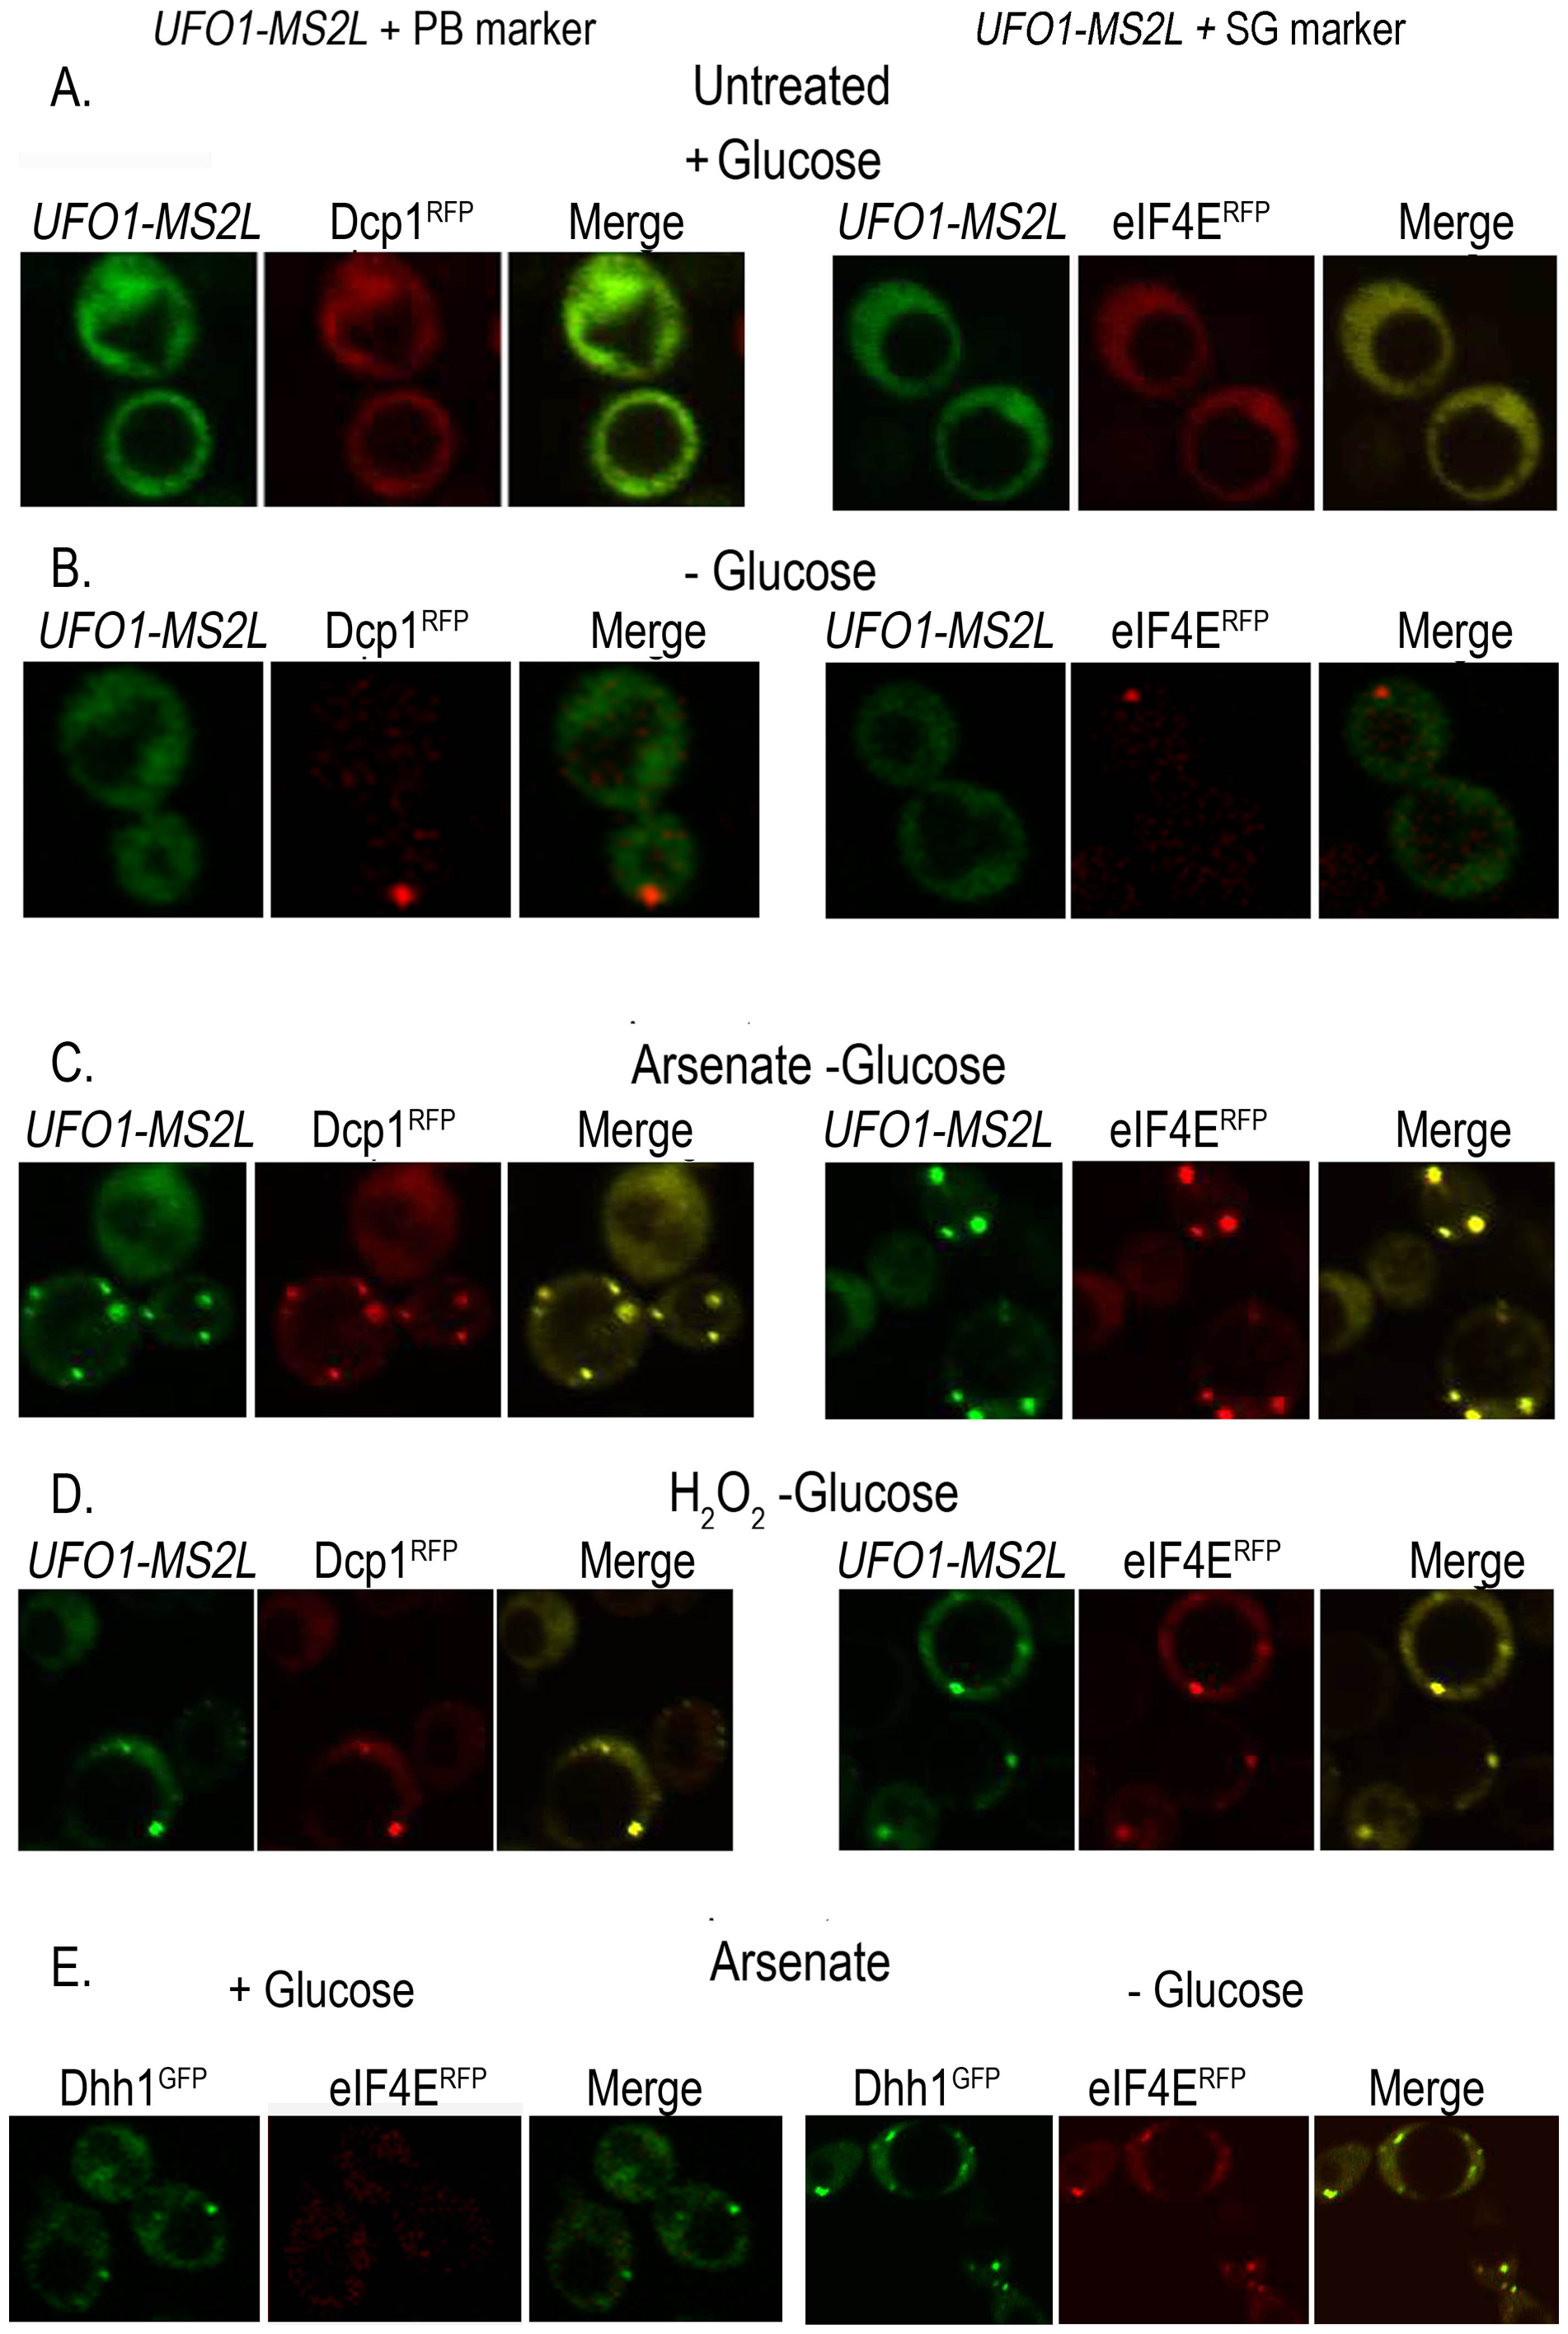 <i>UFO1-MS2L</i> mRNAs induced by stress colocalize with subunits of PBs and SGs.